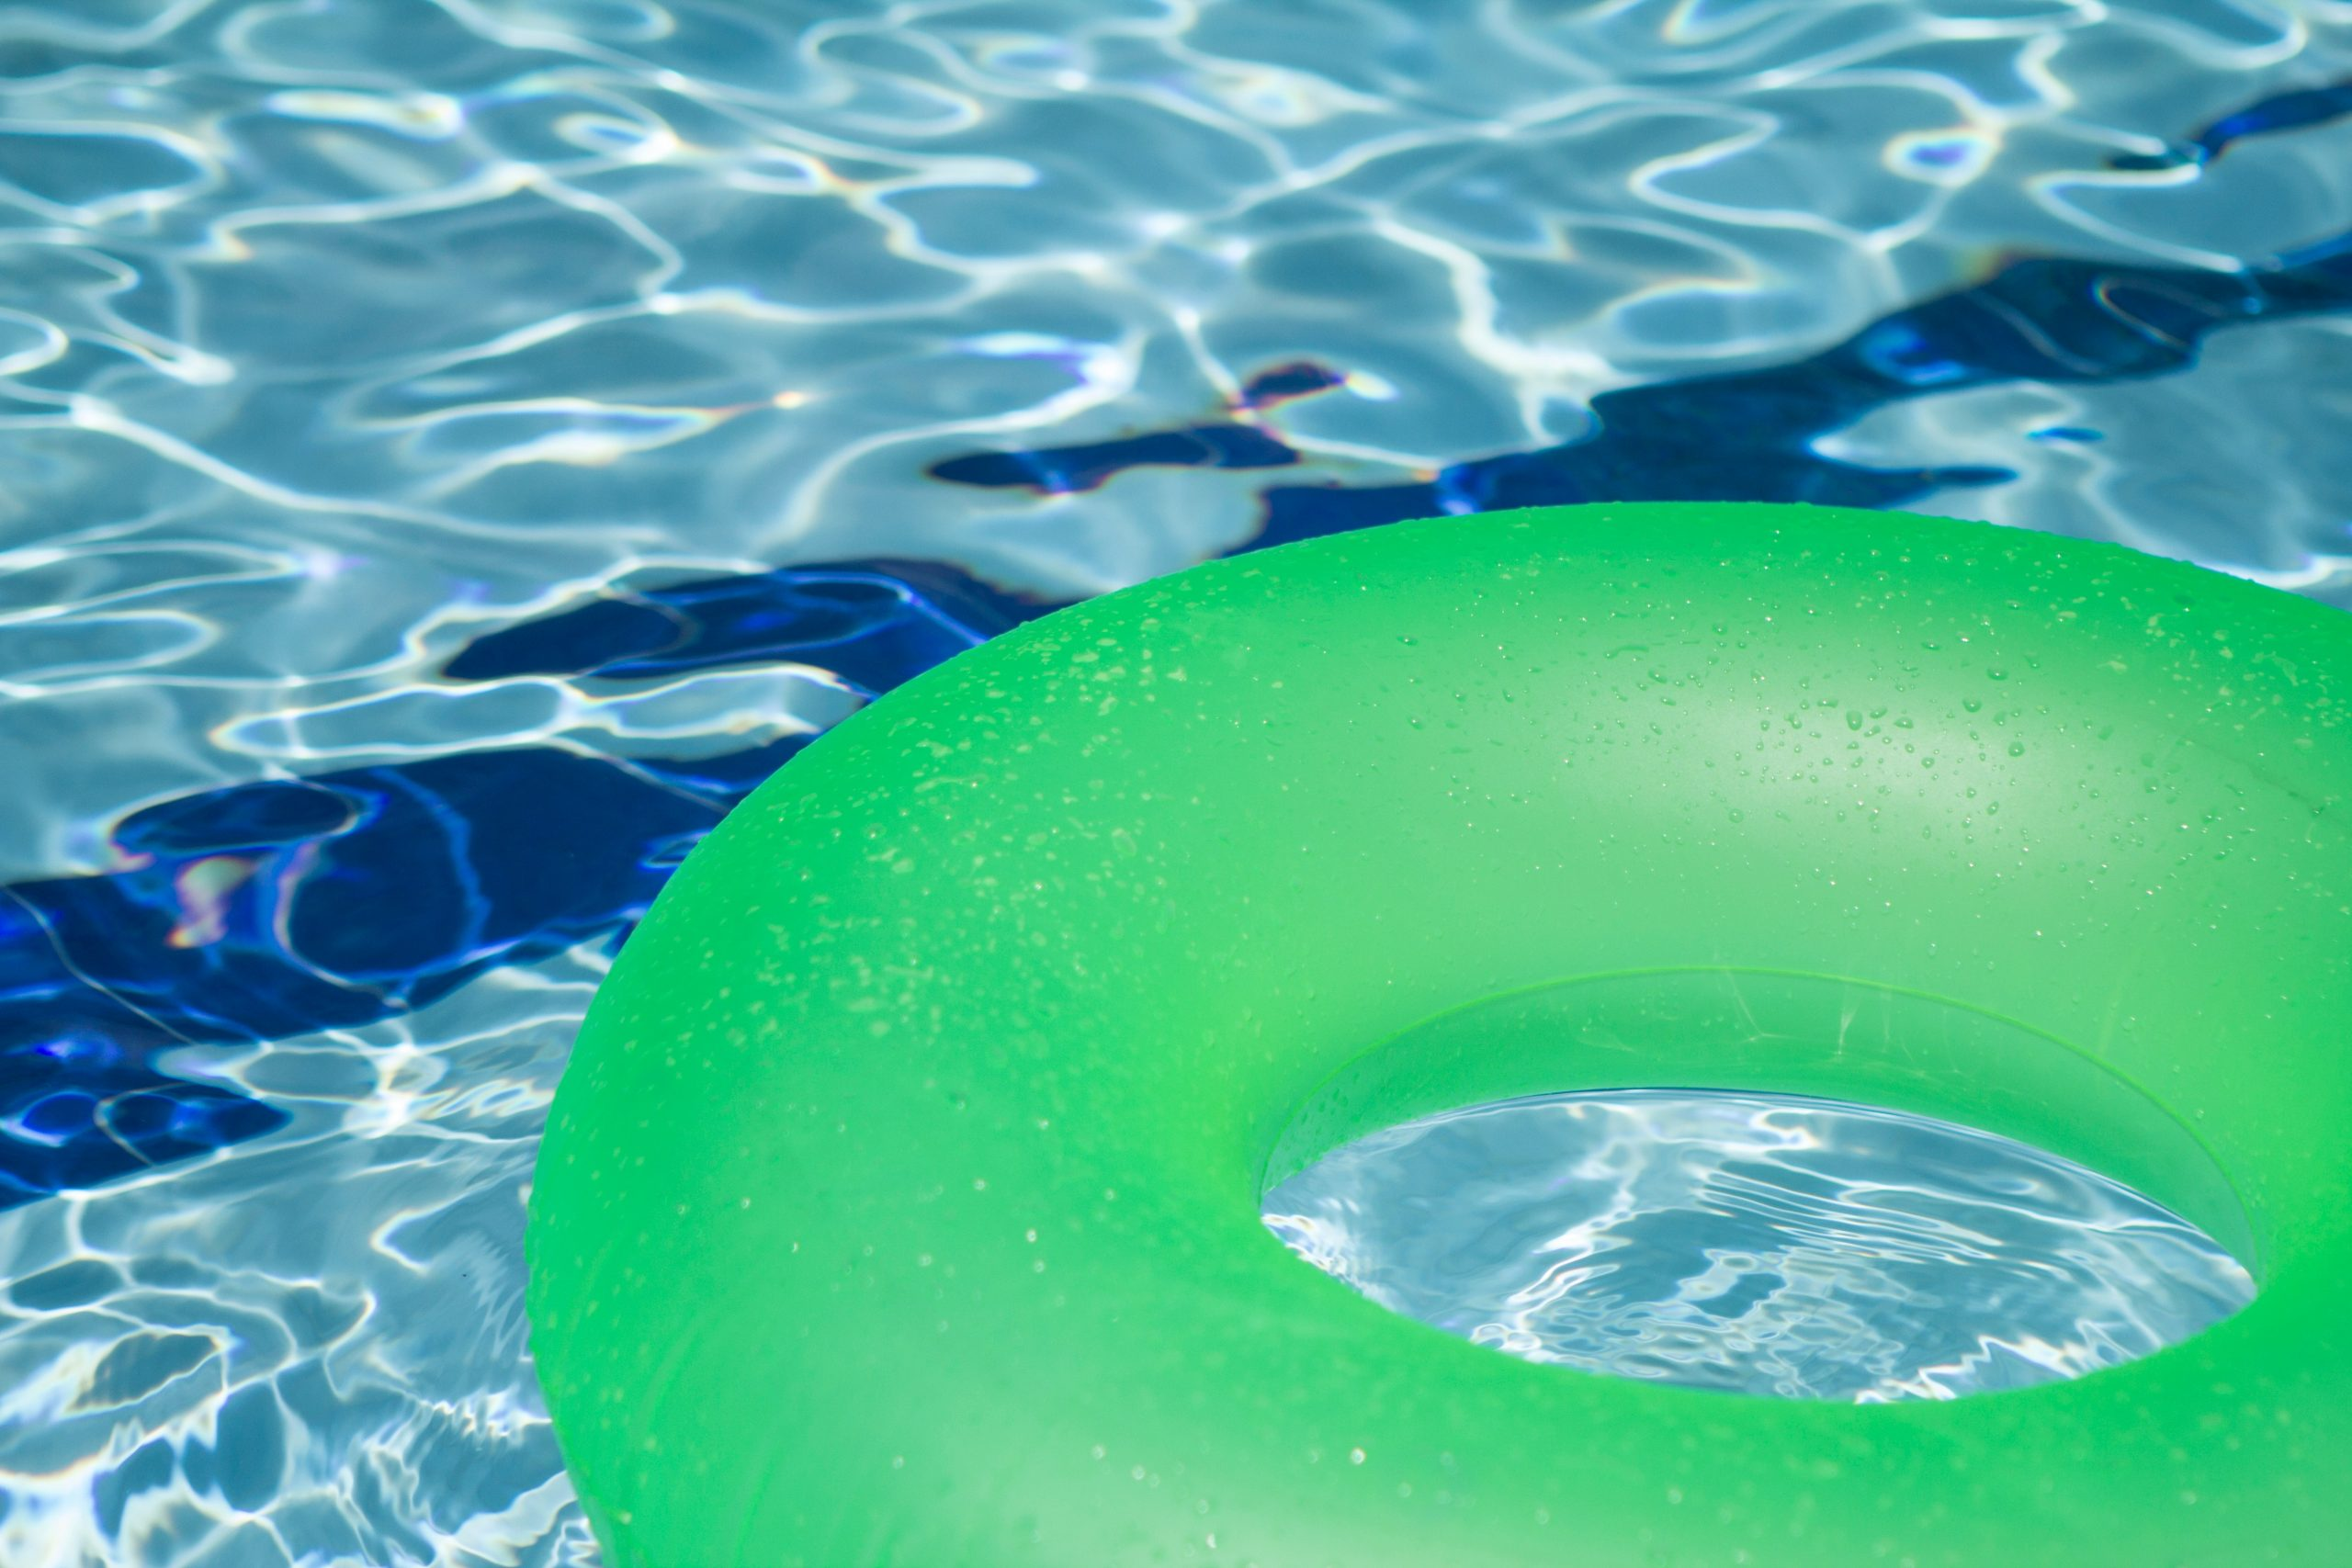 close up of green tube floating in swimming pool